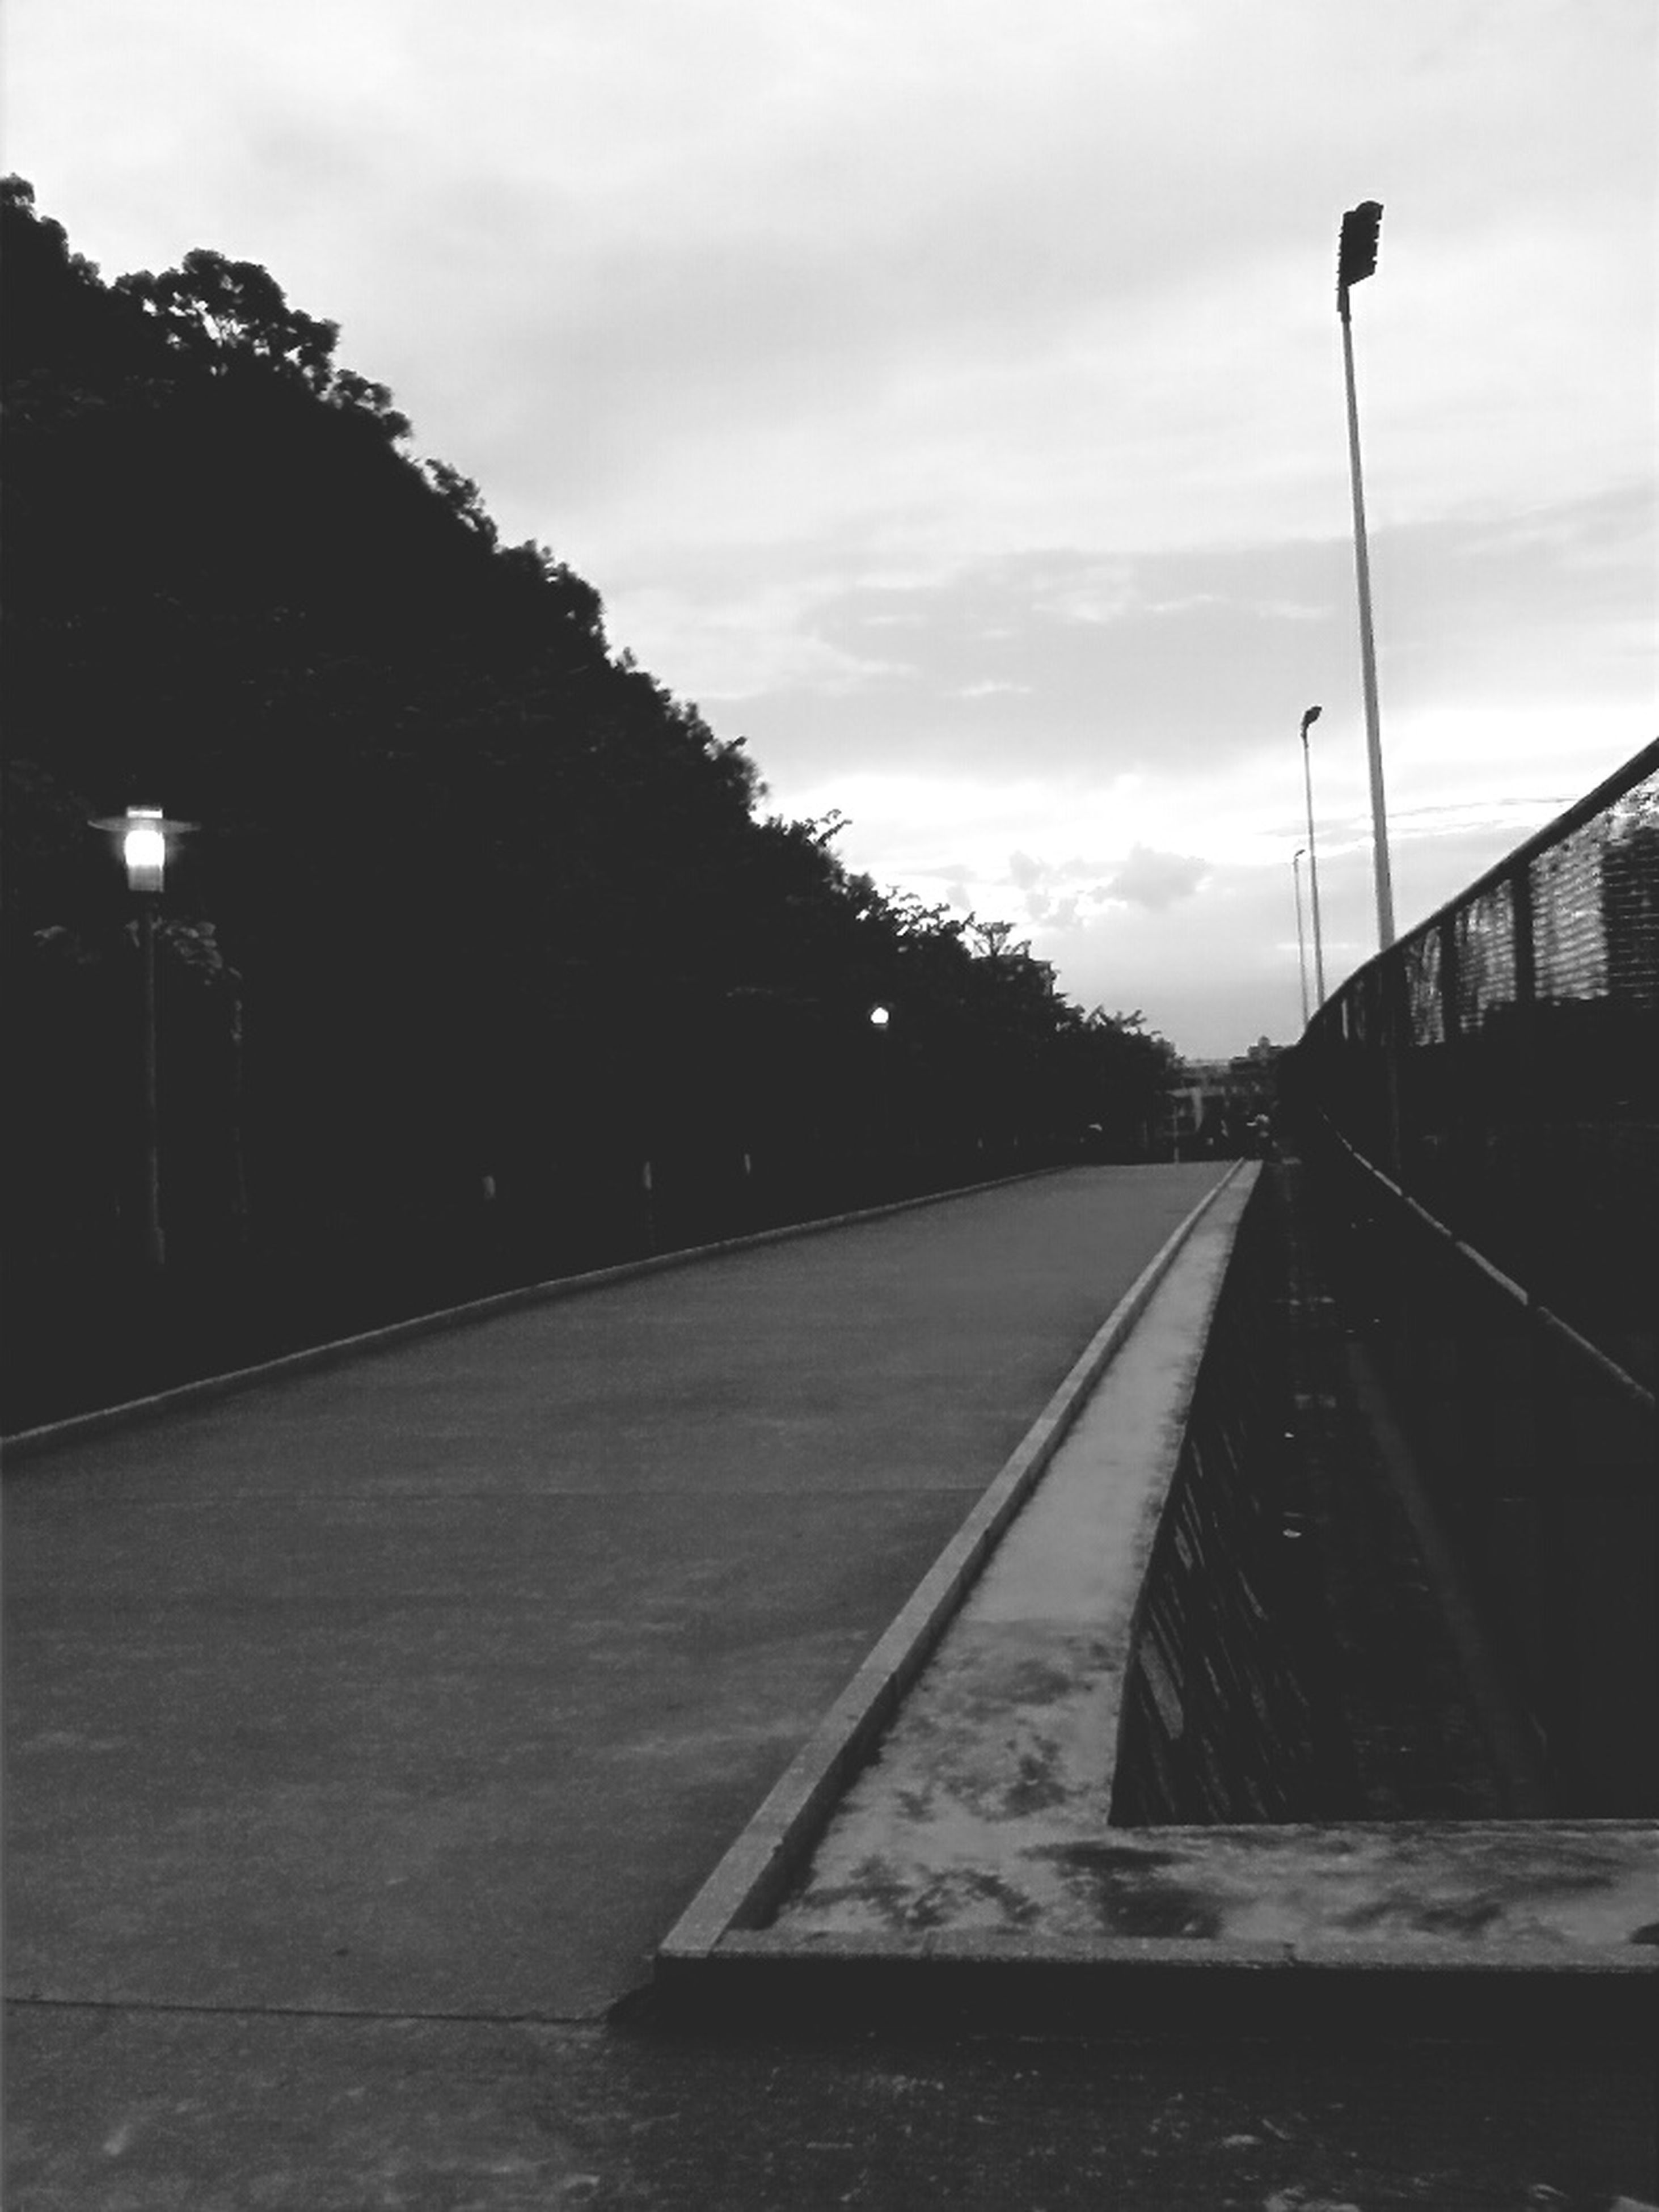 the way forward, sky, transportation, diminishing perspective, vanishing point, cloud - sky, road, railroad track, road marking, street light, tree, cloudy, empty, surface level, cloud, long, street, built structure, dusk, outdoors